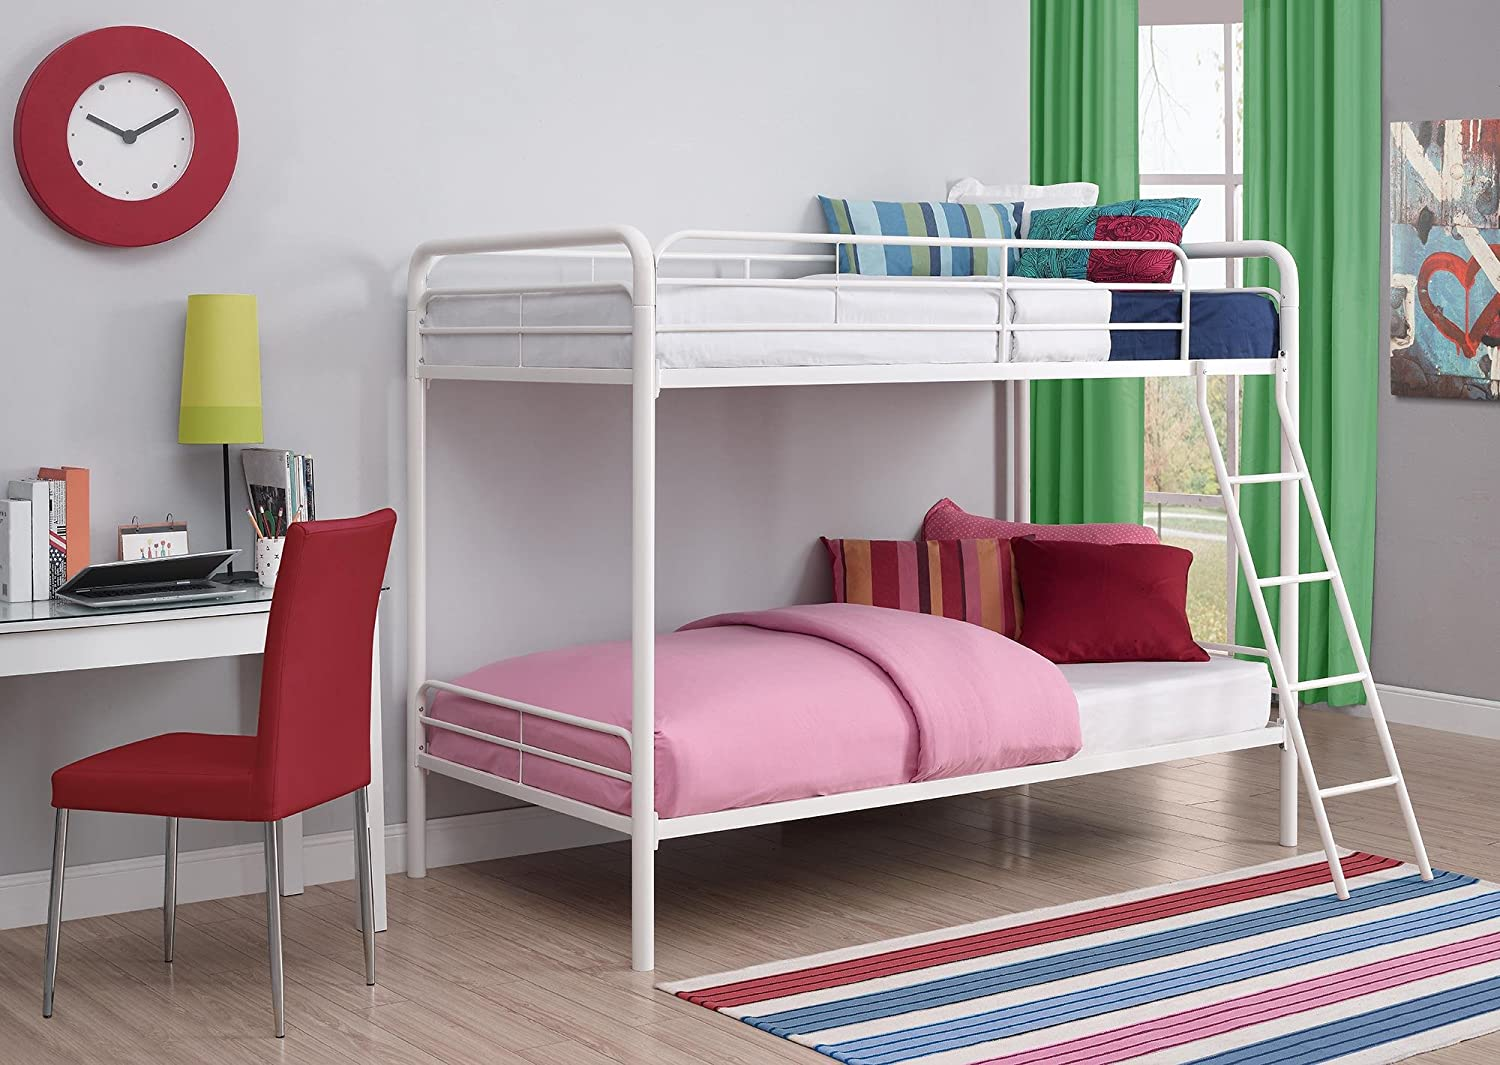 Bunk beds twin over twin size childs bed bedroom furniture for Twin size beds for boys